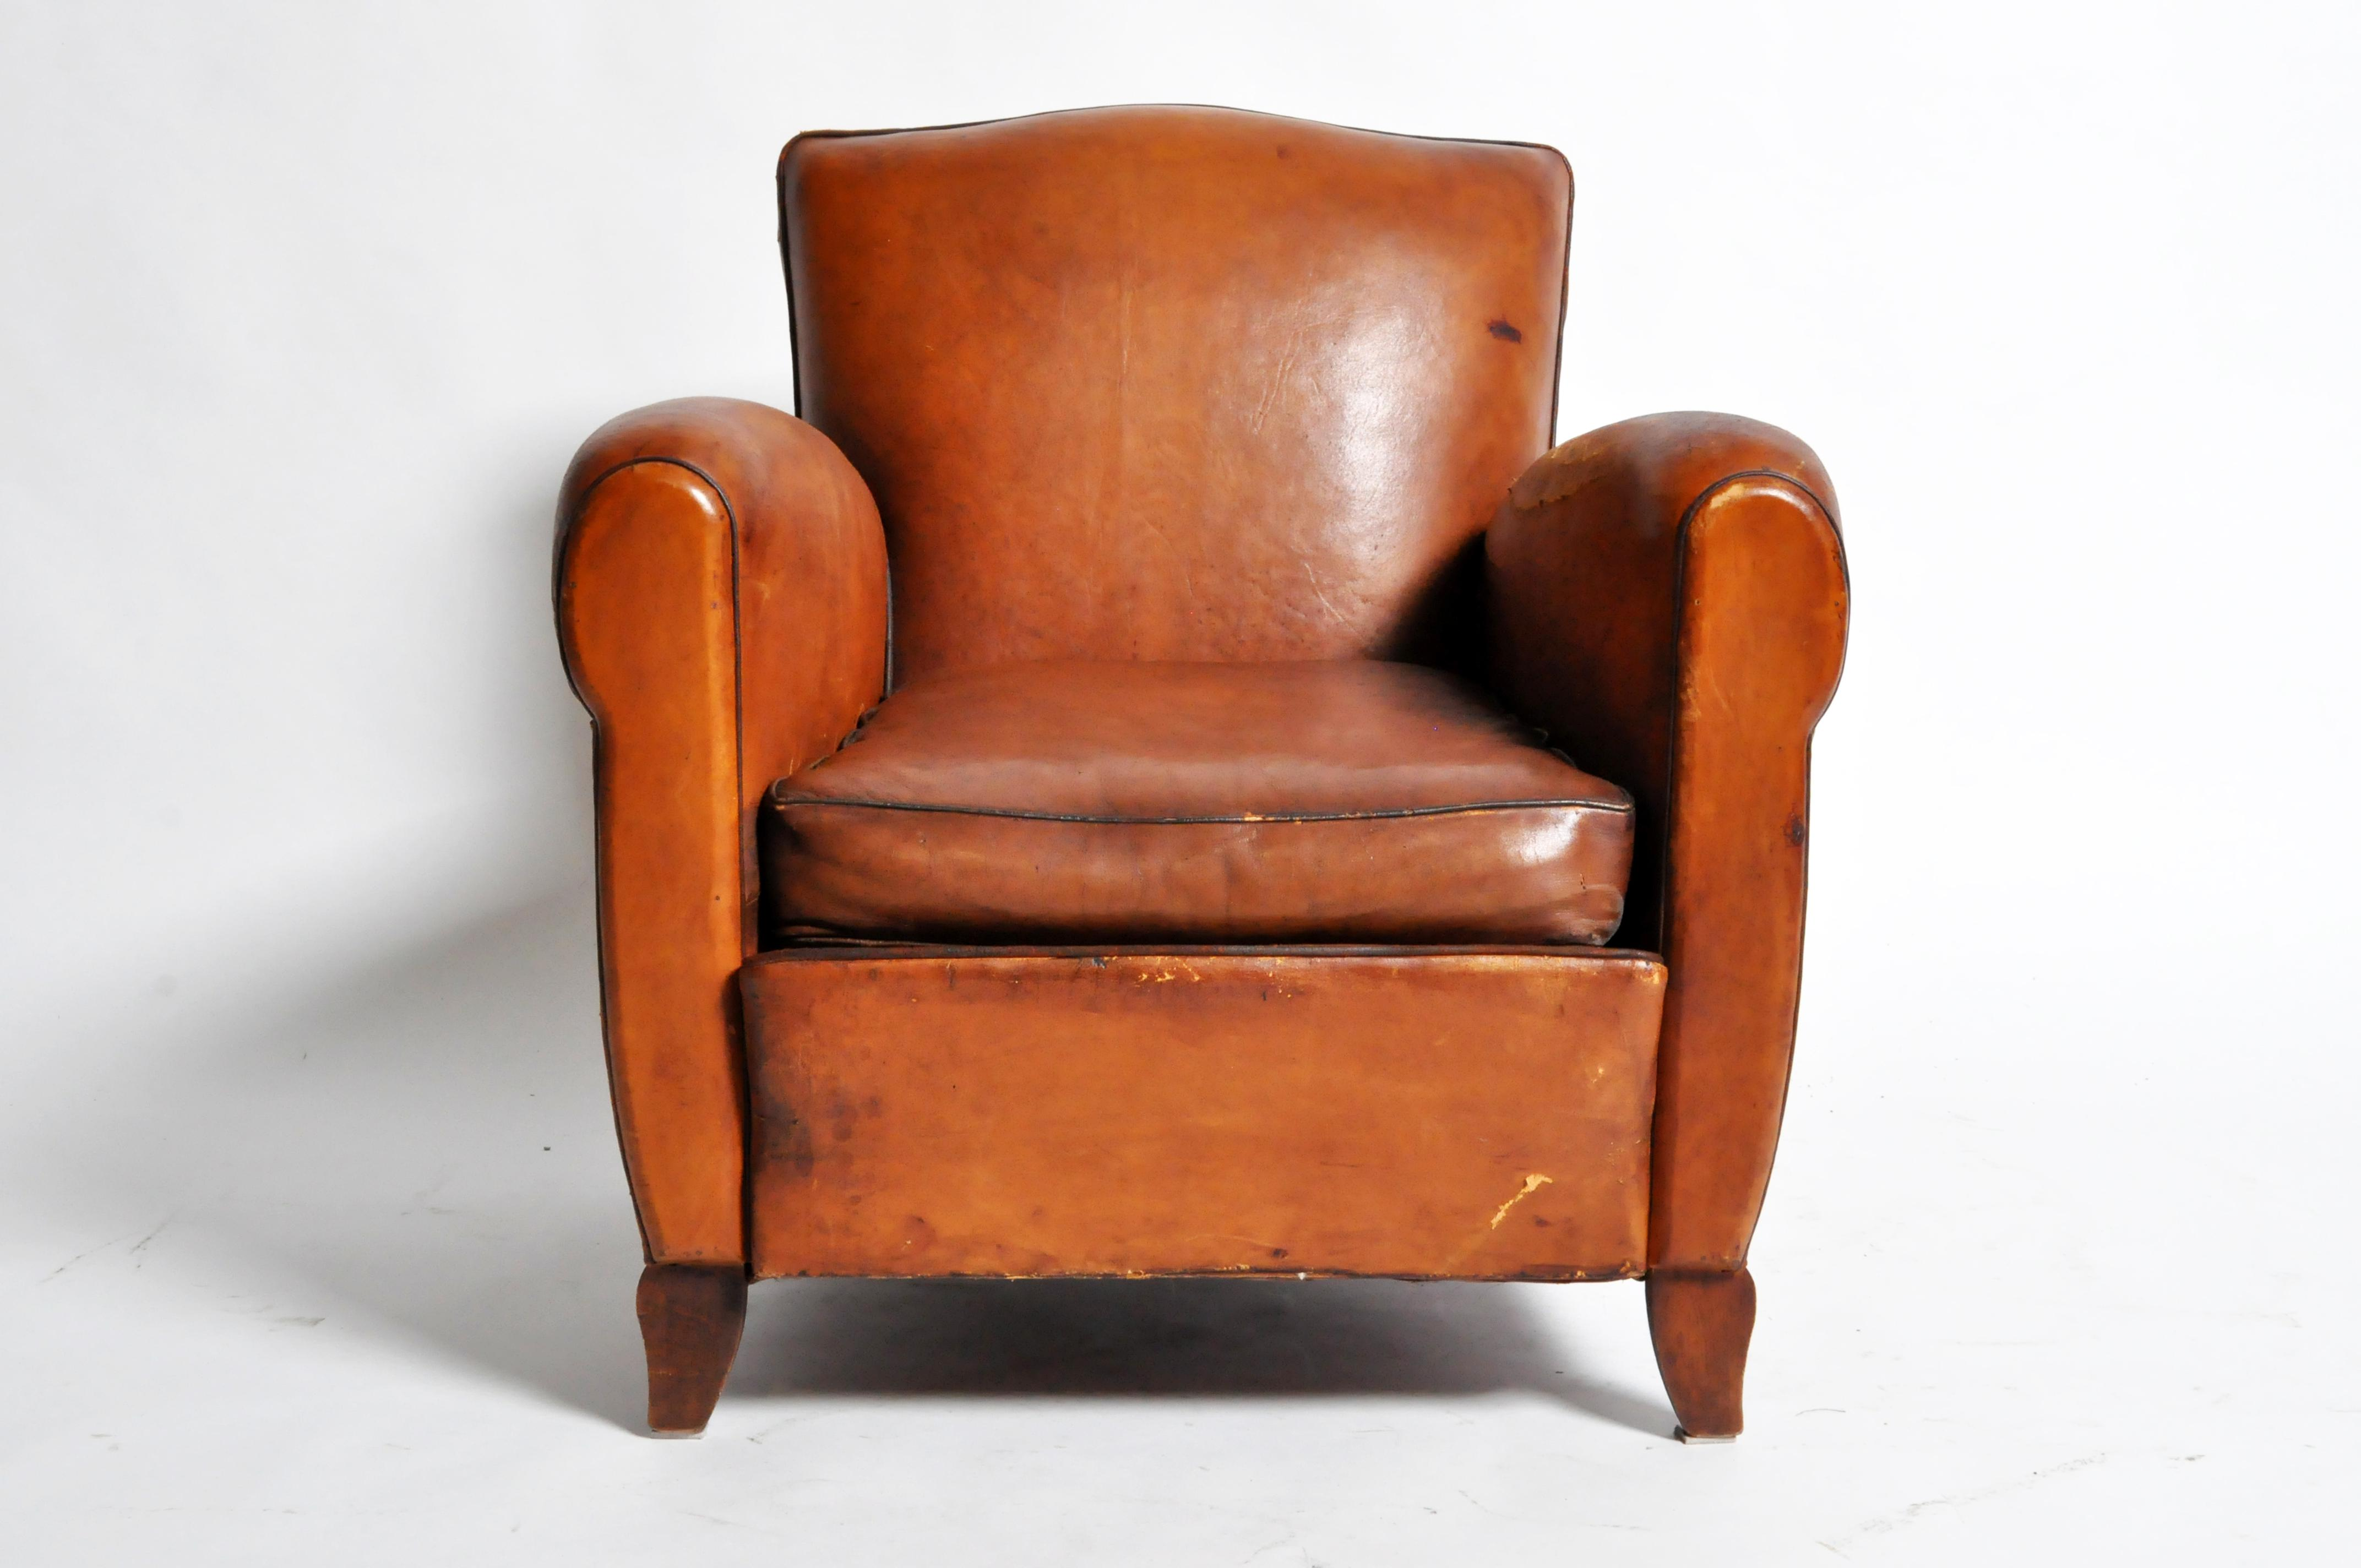 French Art Deco Leather Club Chair With Piping And Original Patina   Image  11 Of 11